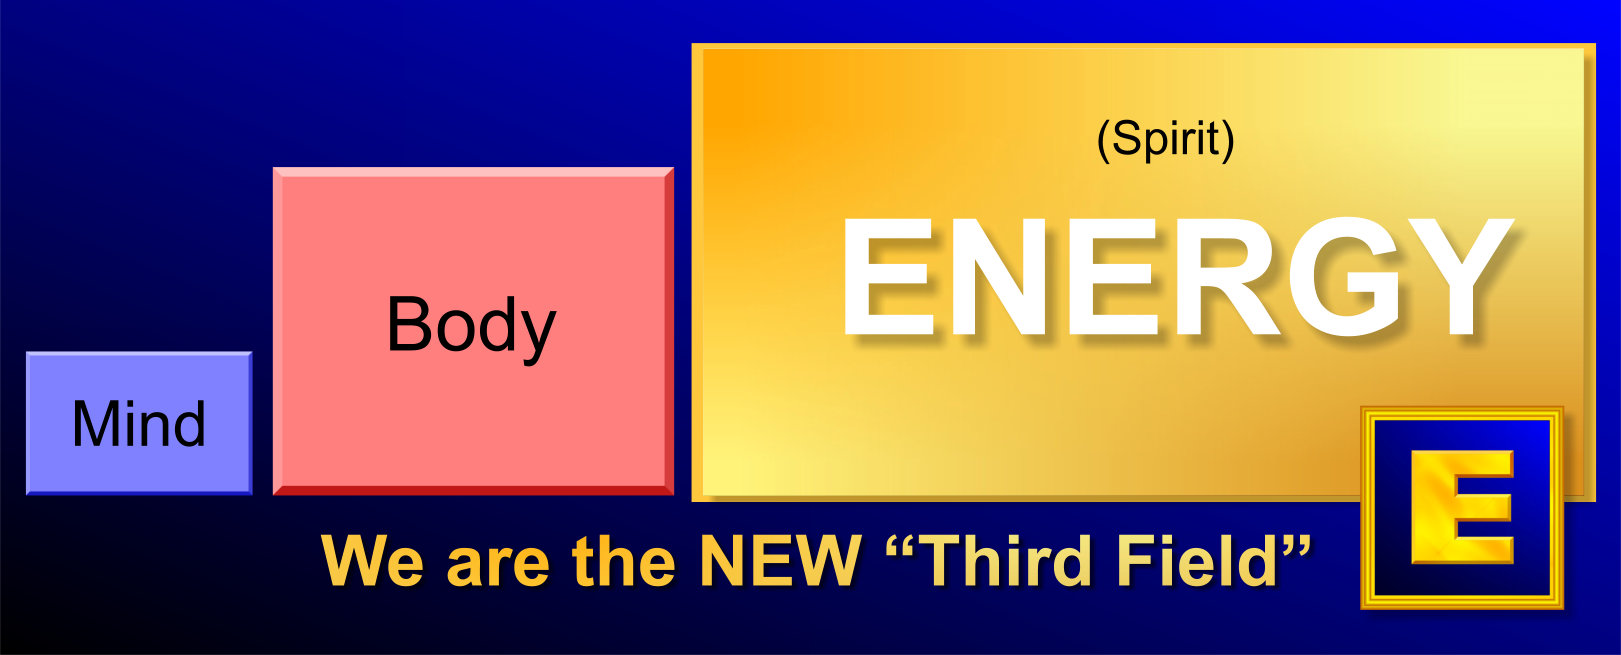 Energy is the NEW Third Field!